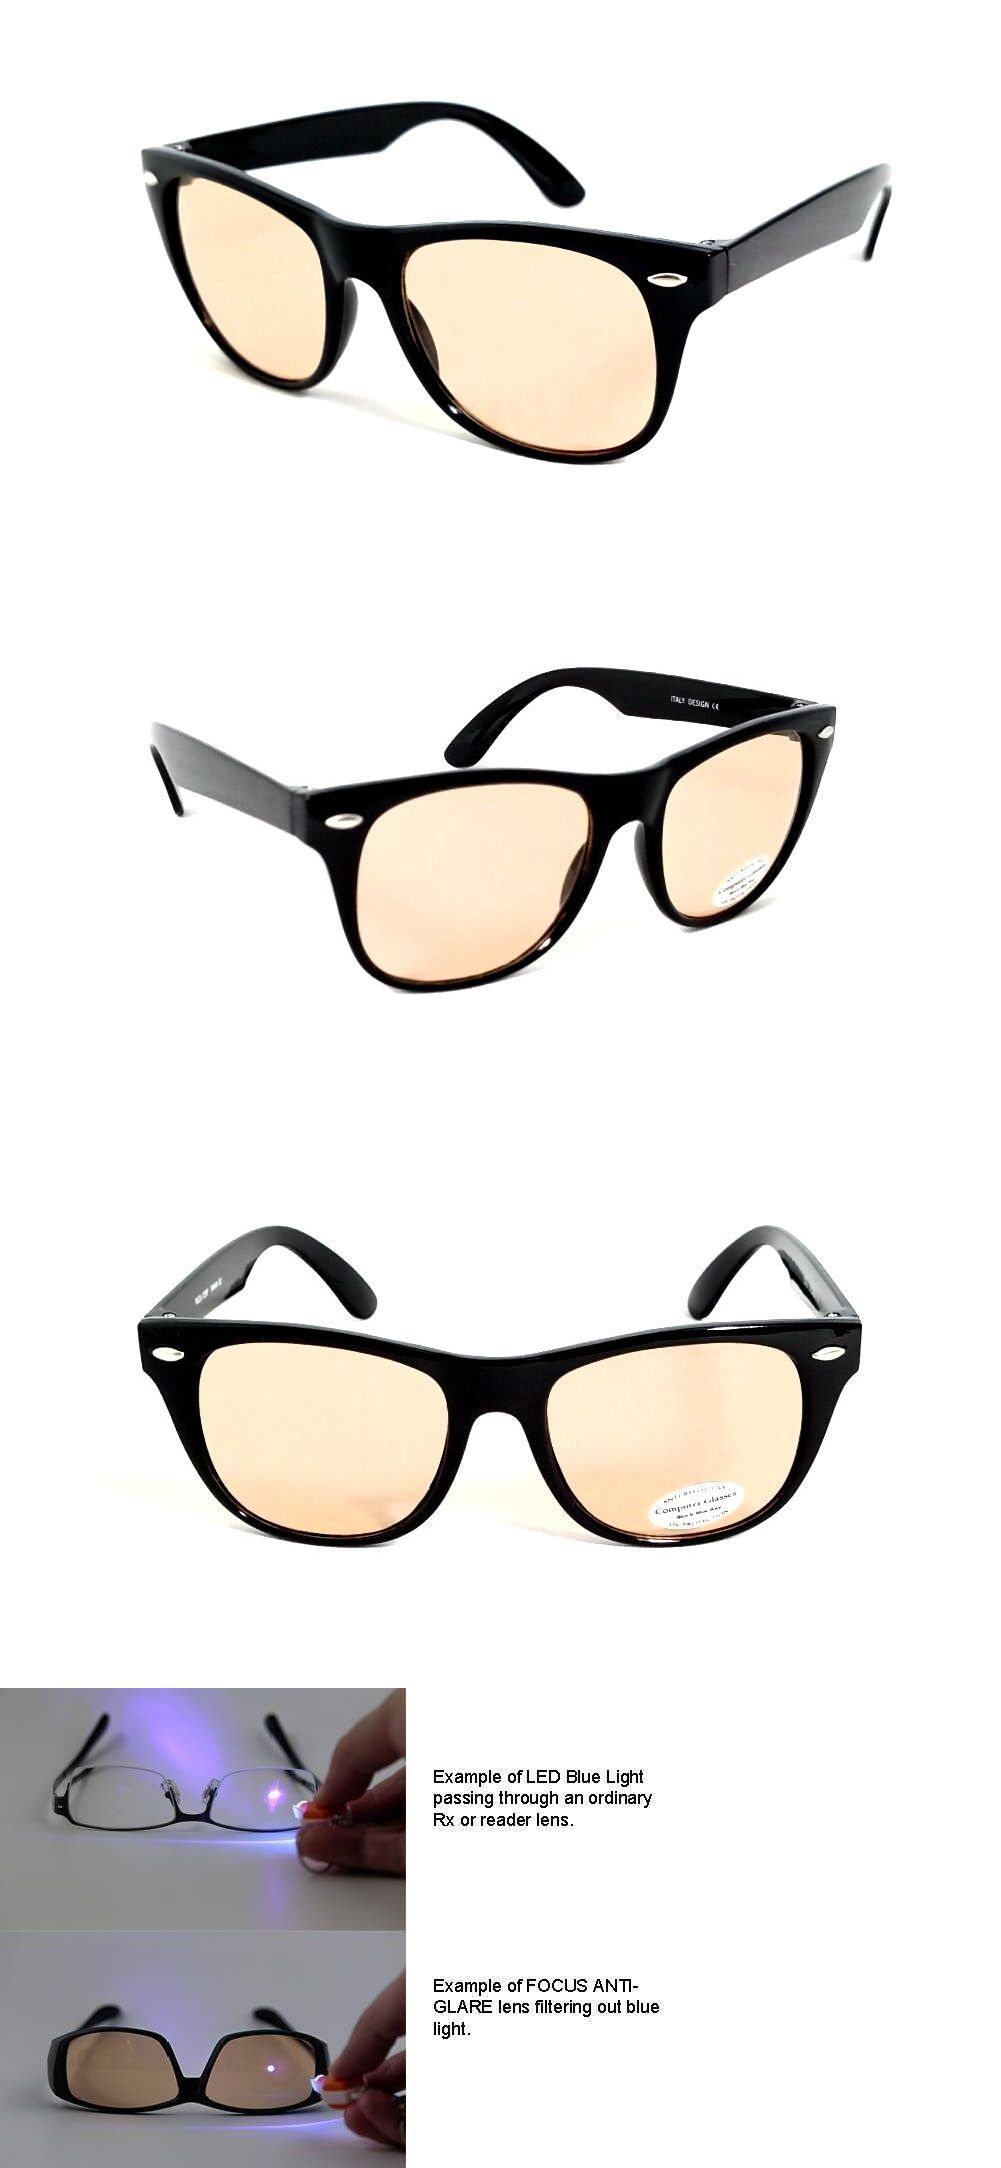 43298f8ce2a67 Accessories 179245  Focus Anti-Glare Computer Glasses Reduces Blue Light  And Eye Fatigue Black Frame -  BUY IT NOW ONLY   10.49 on  eBay   accessories  focus ...